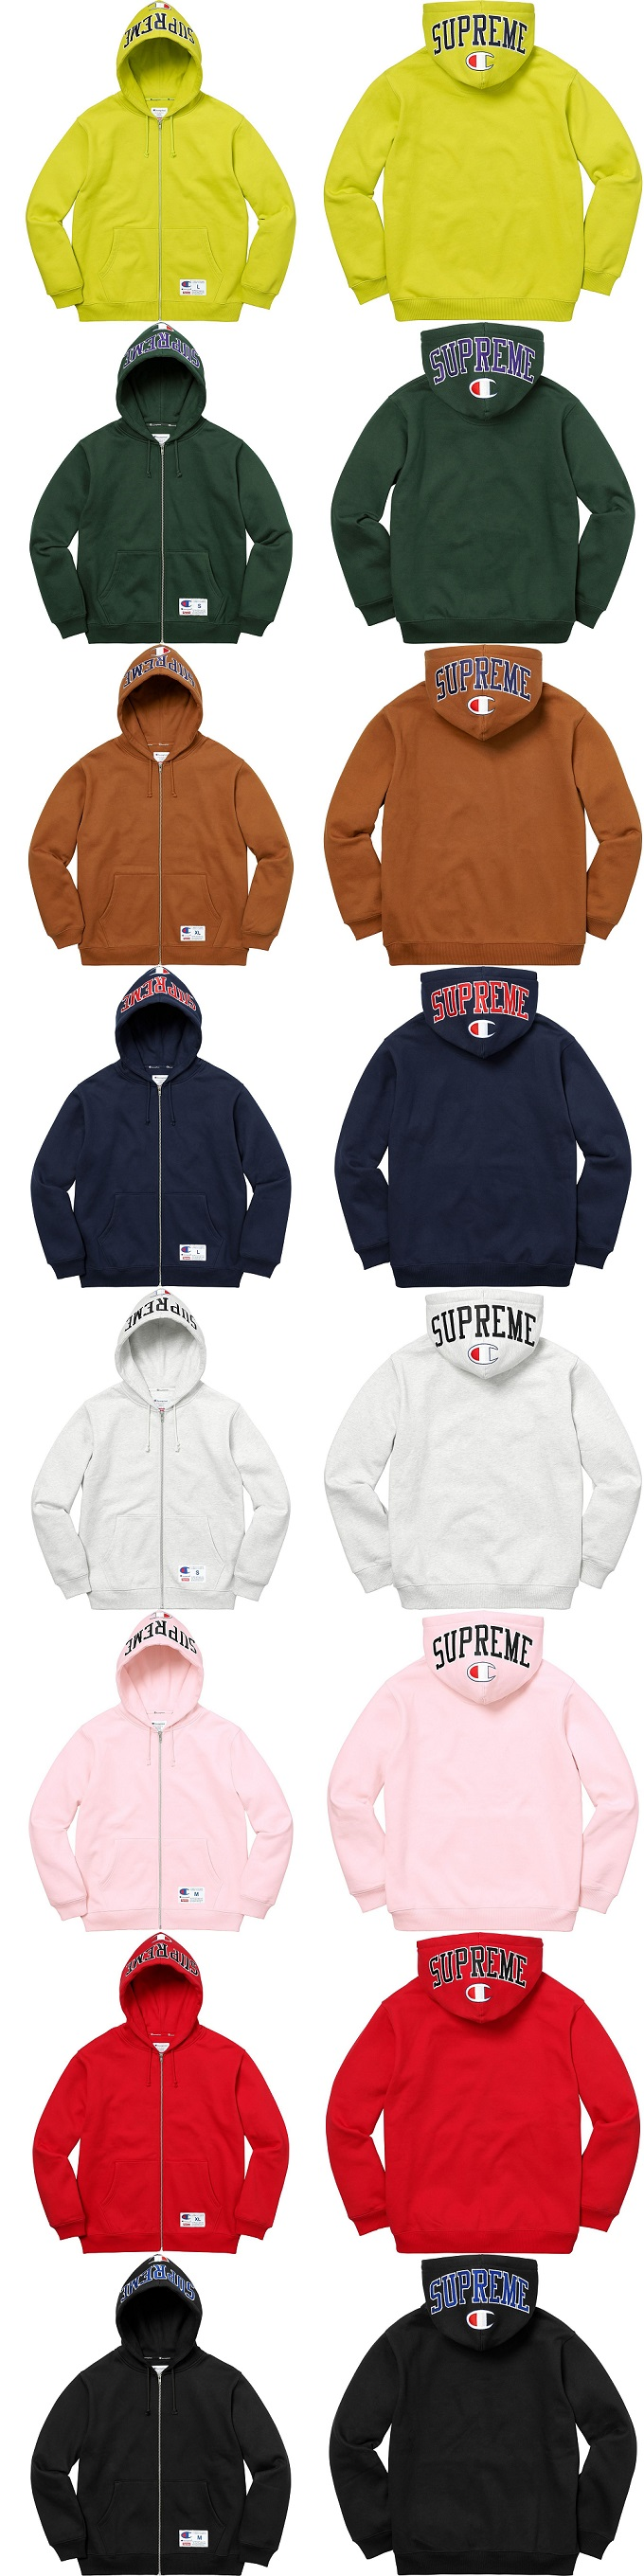 supreme-2017aw-fall-winter-supreme-champion-arc-logo-zip-up-sweat